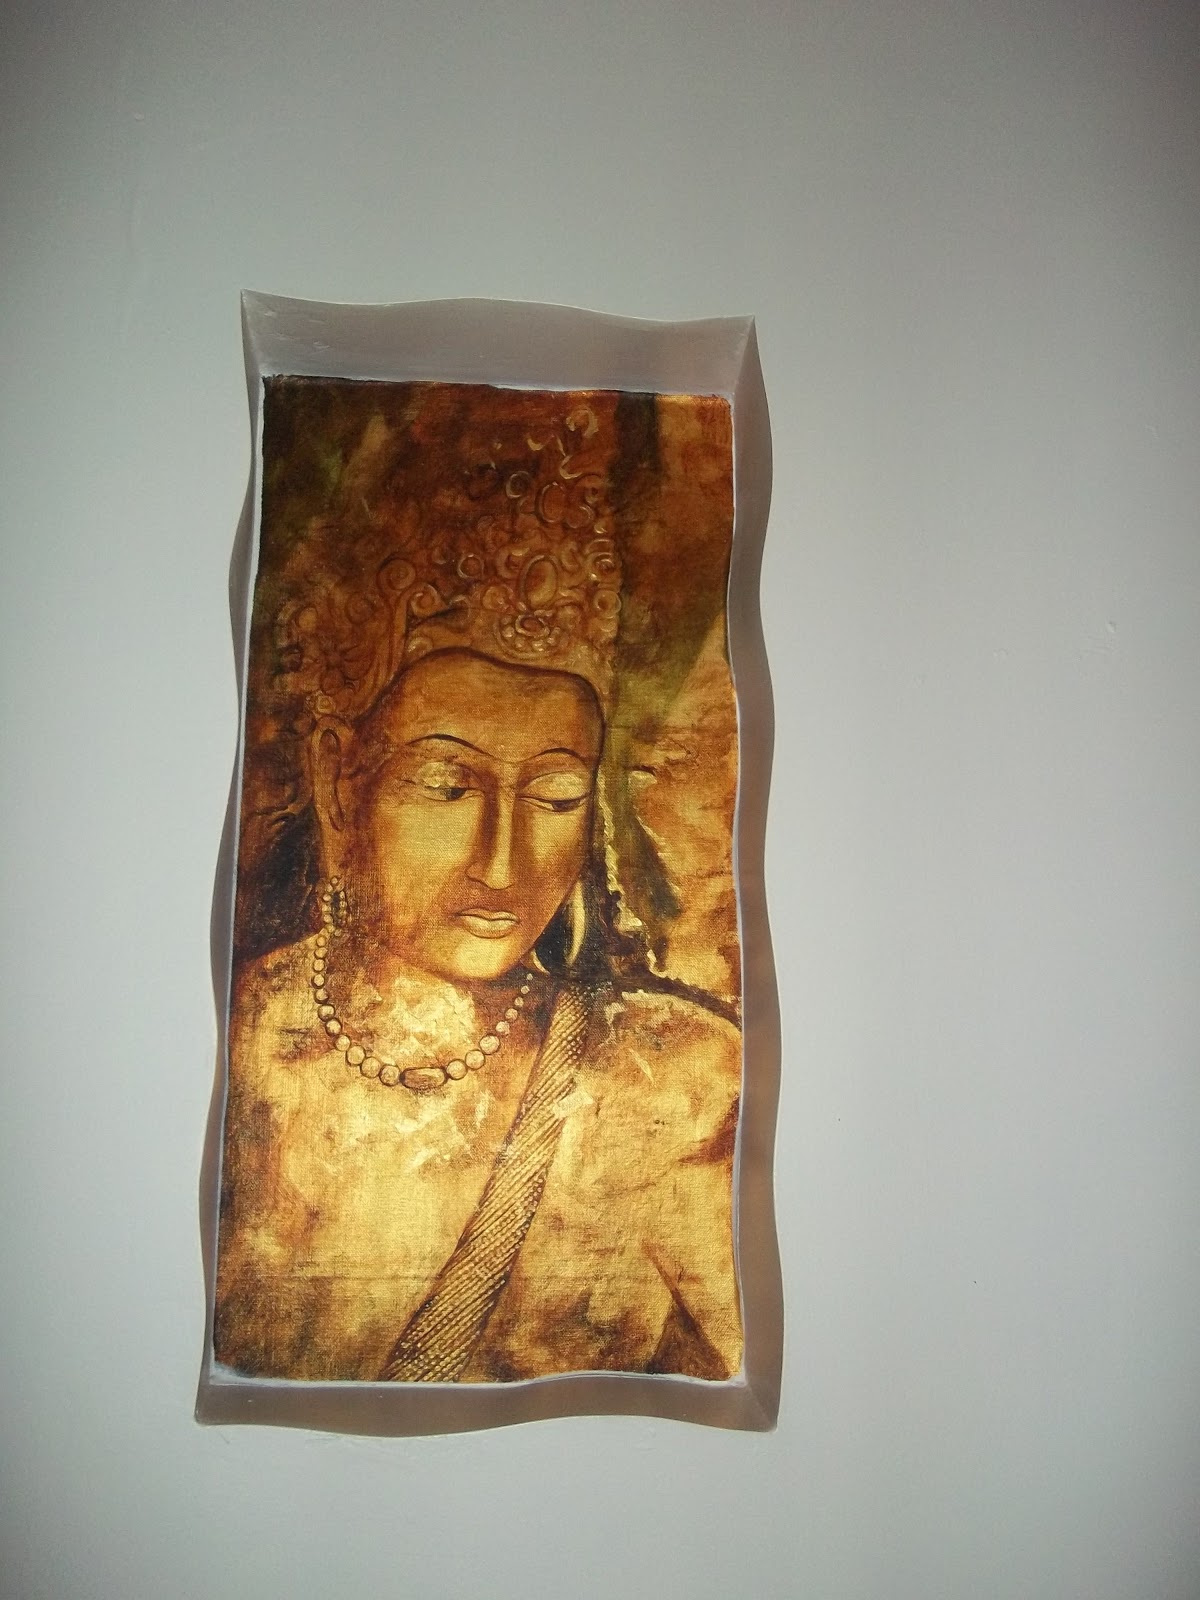 Http Sarikachowdhery Blogspot Com 2011 08 Buddhist Inspired Home Decor Html